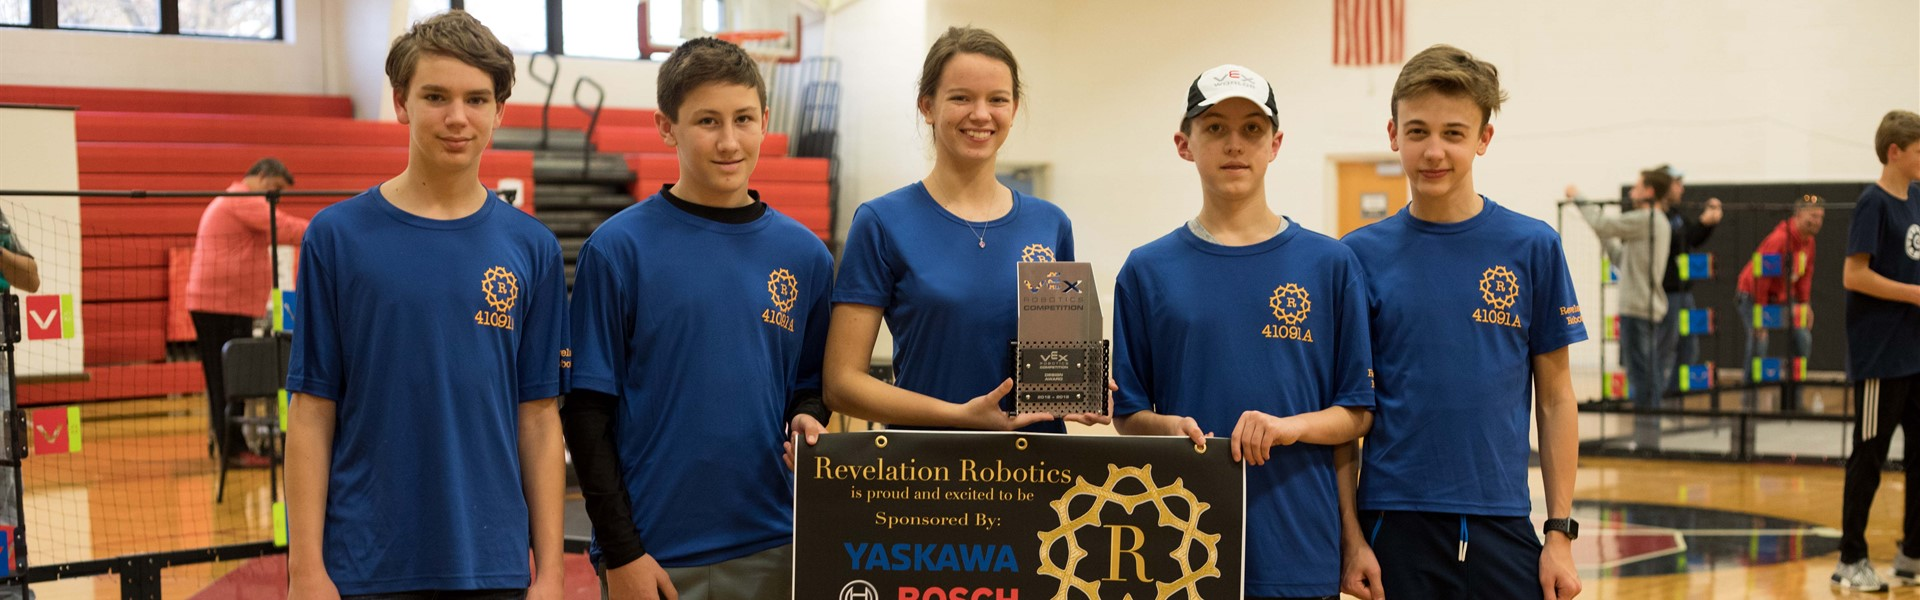 Congrats to the Vex Robotics Team for 3rd at State Qualifiers!